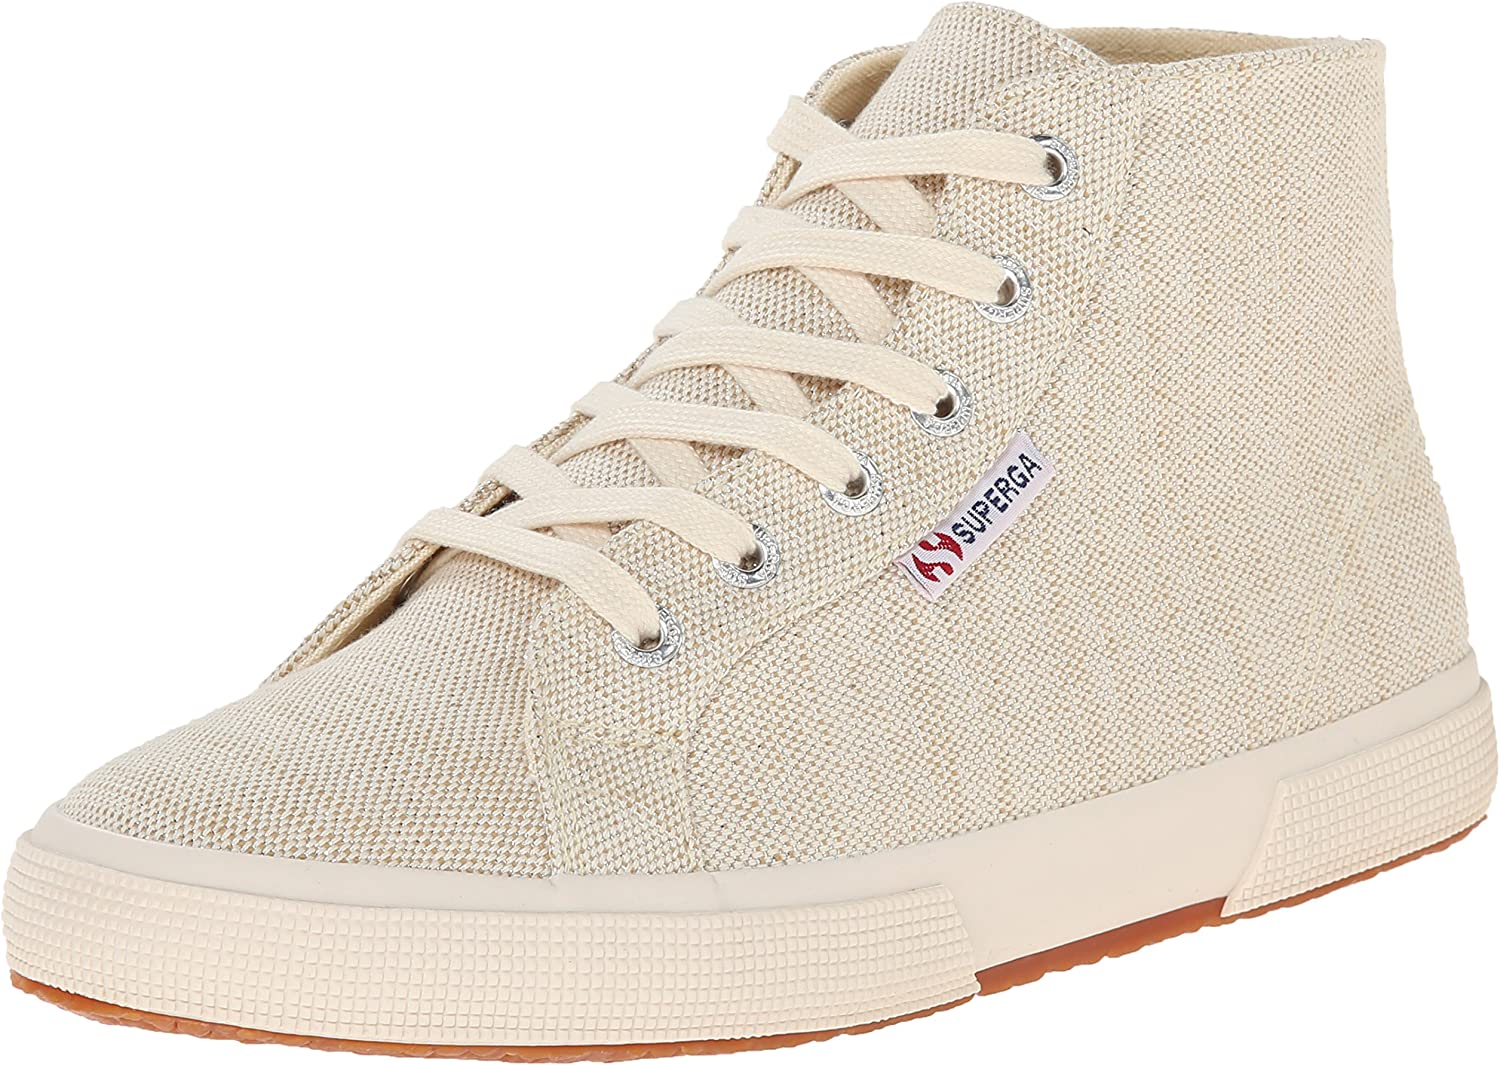 Superga Frauen 2095 Metallic Linen Leinen Fashion Turnschuhe